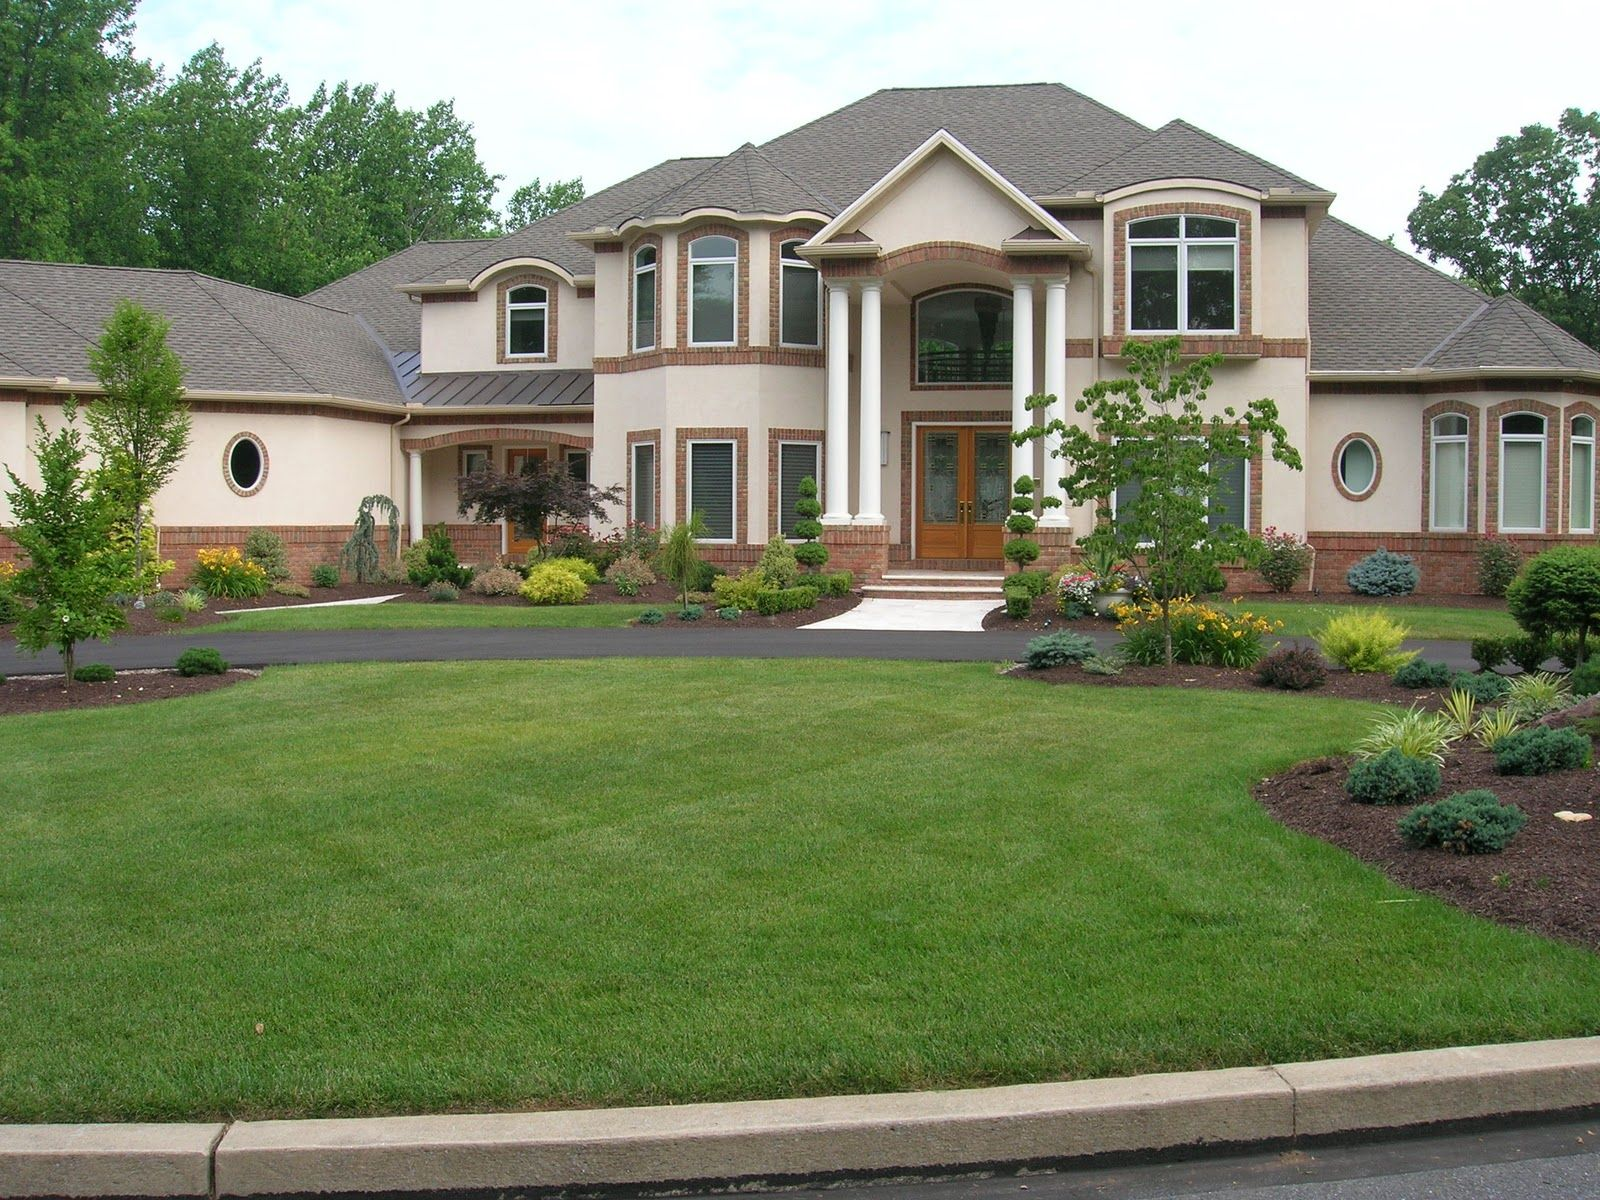 pictures of landscaping for a rambler house in mn | importance of